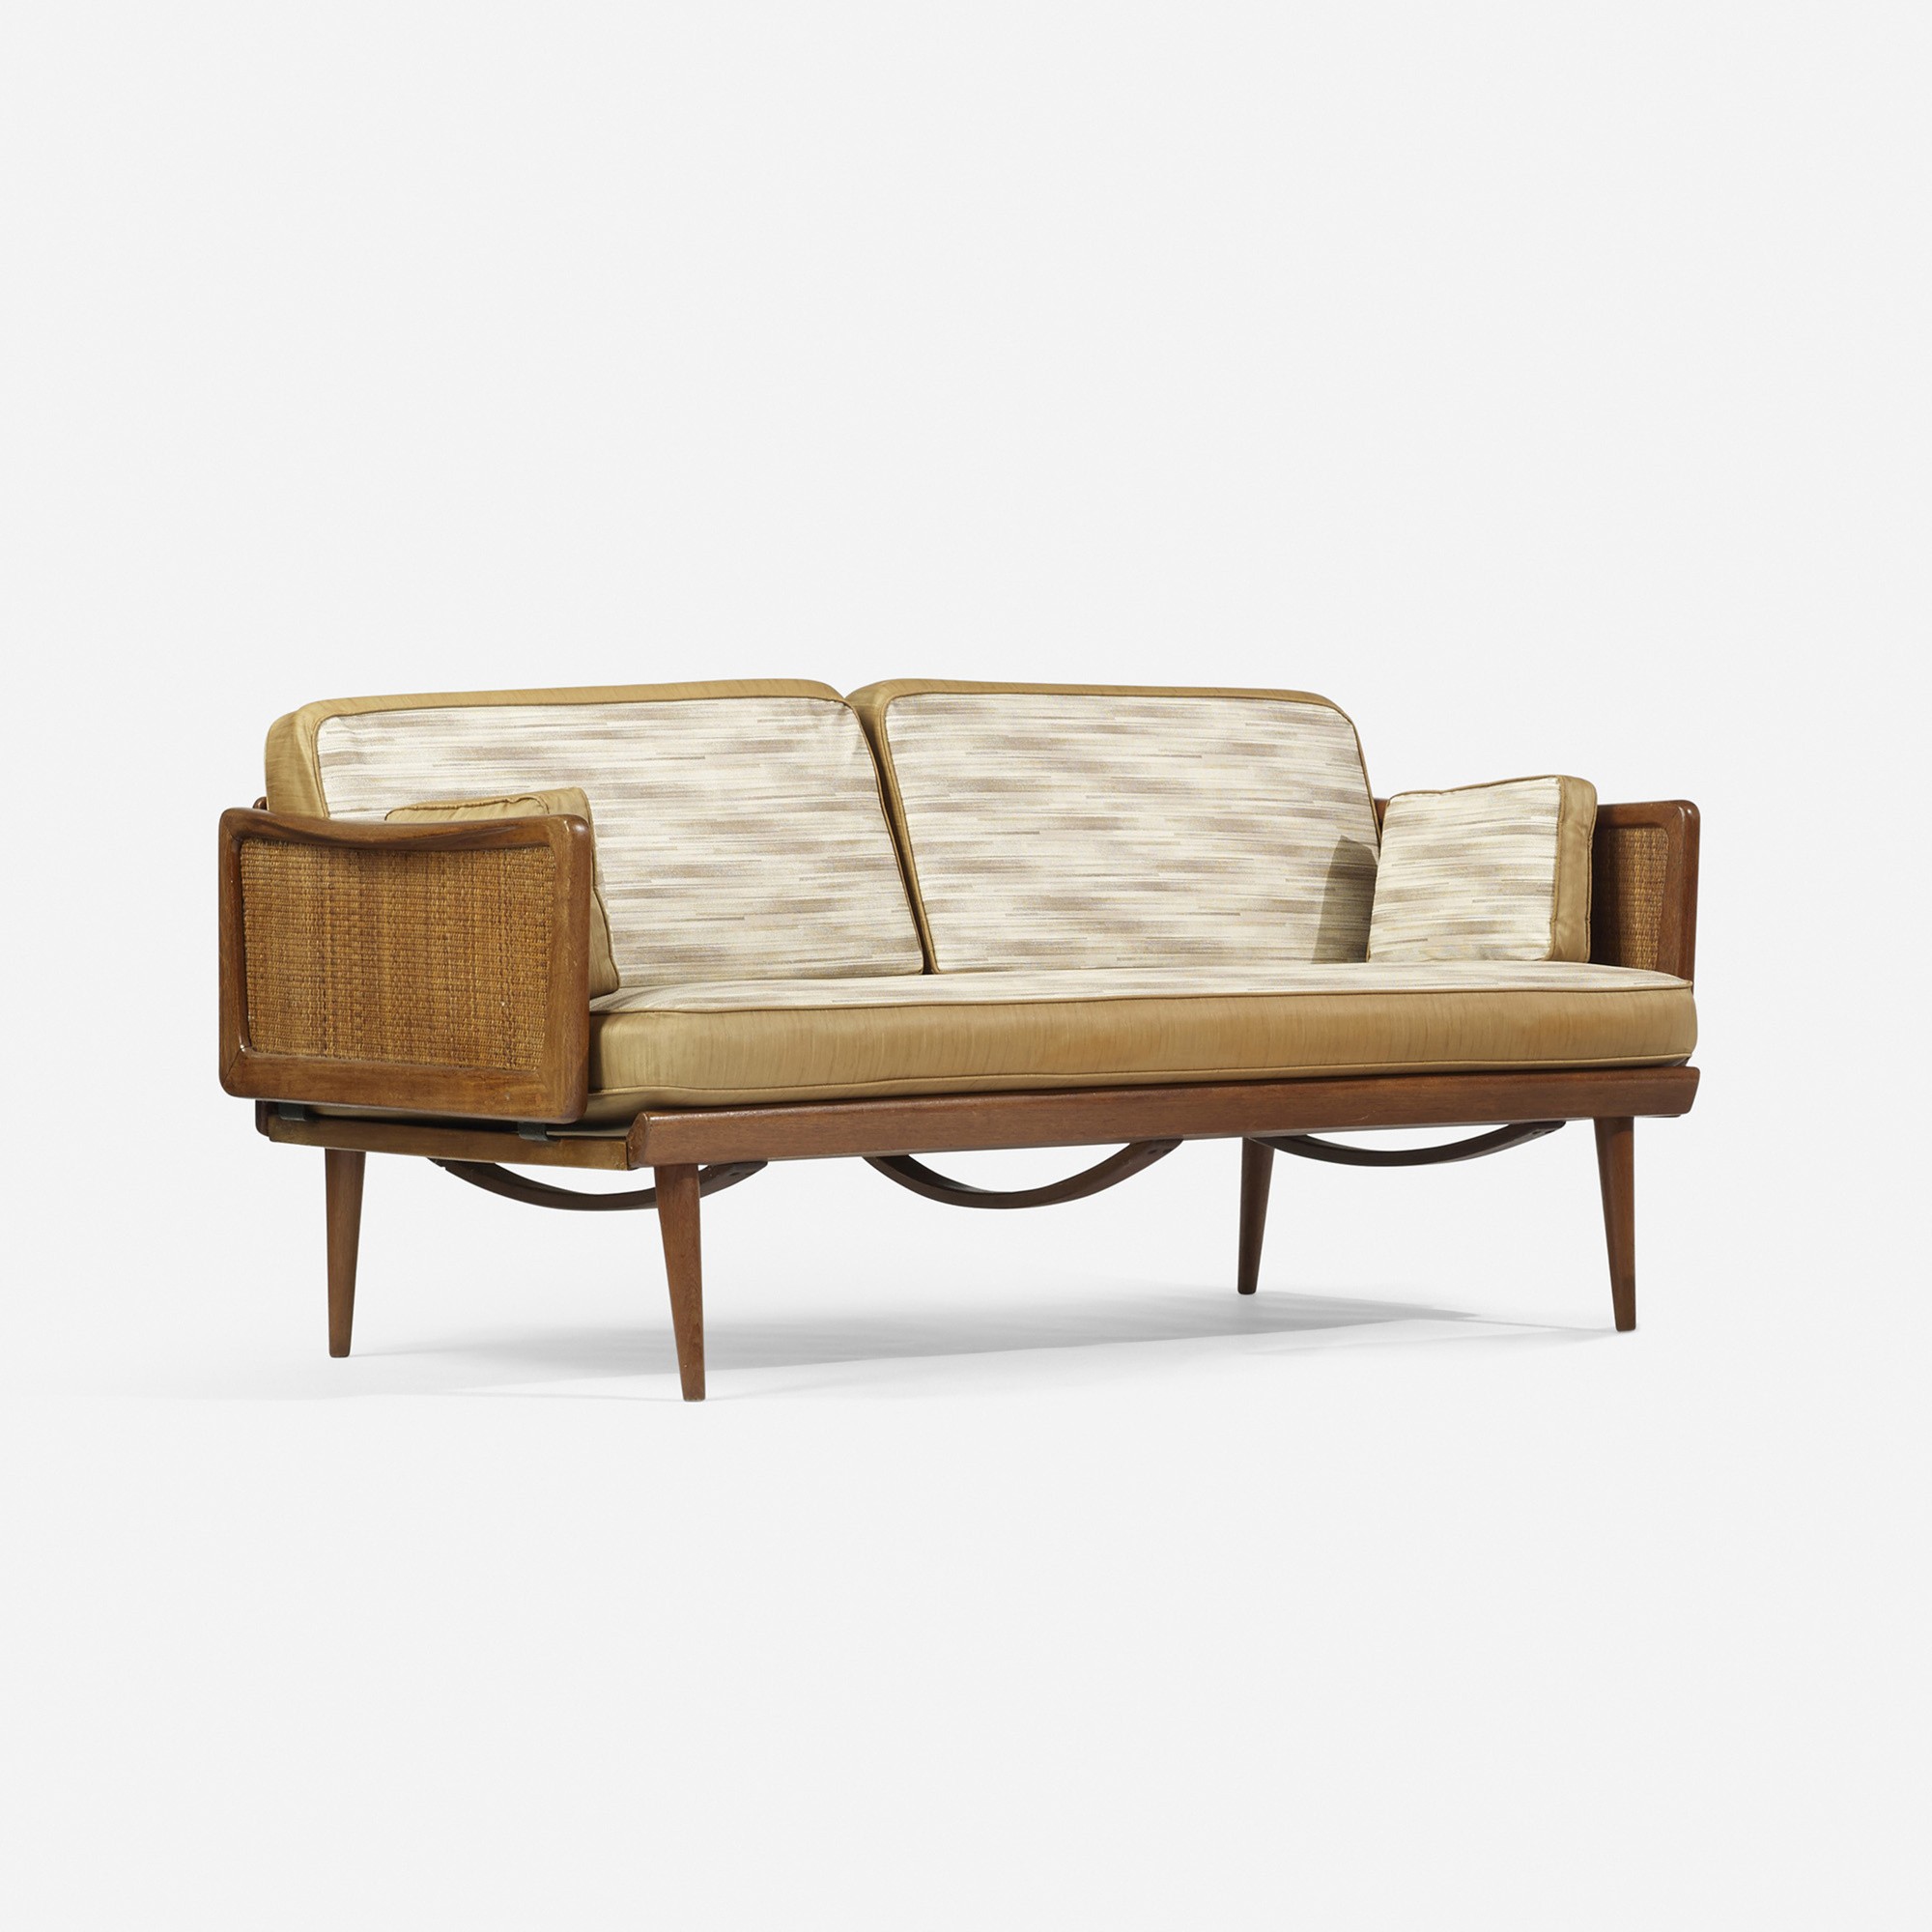 364: Peter Hvidt / daybed, model FD 451 (1 of 4)